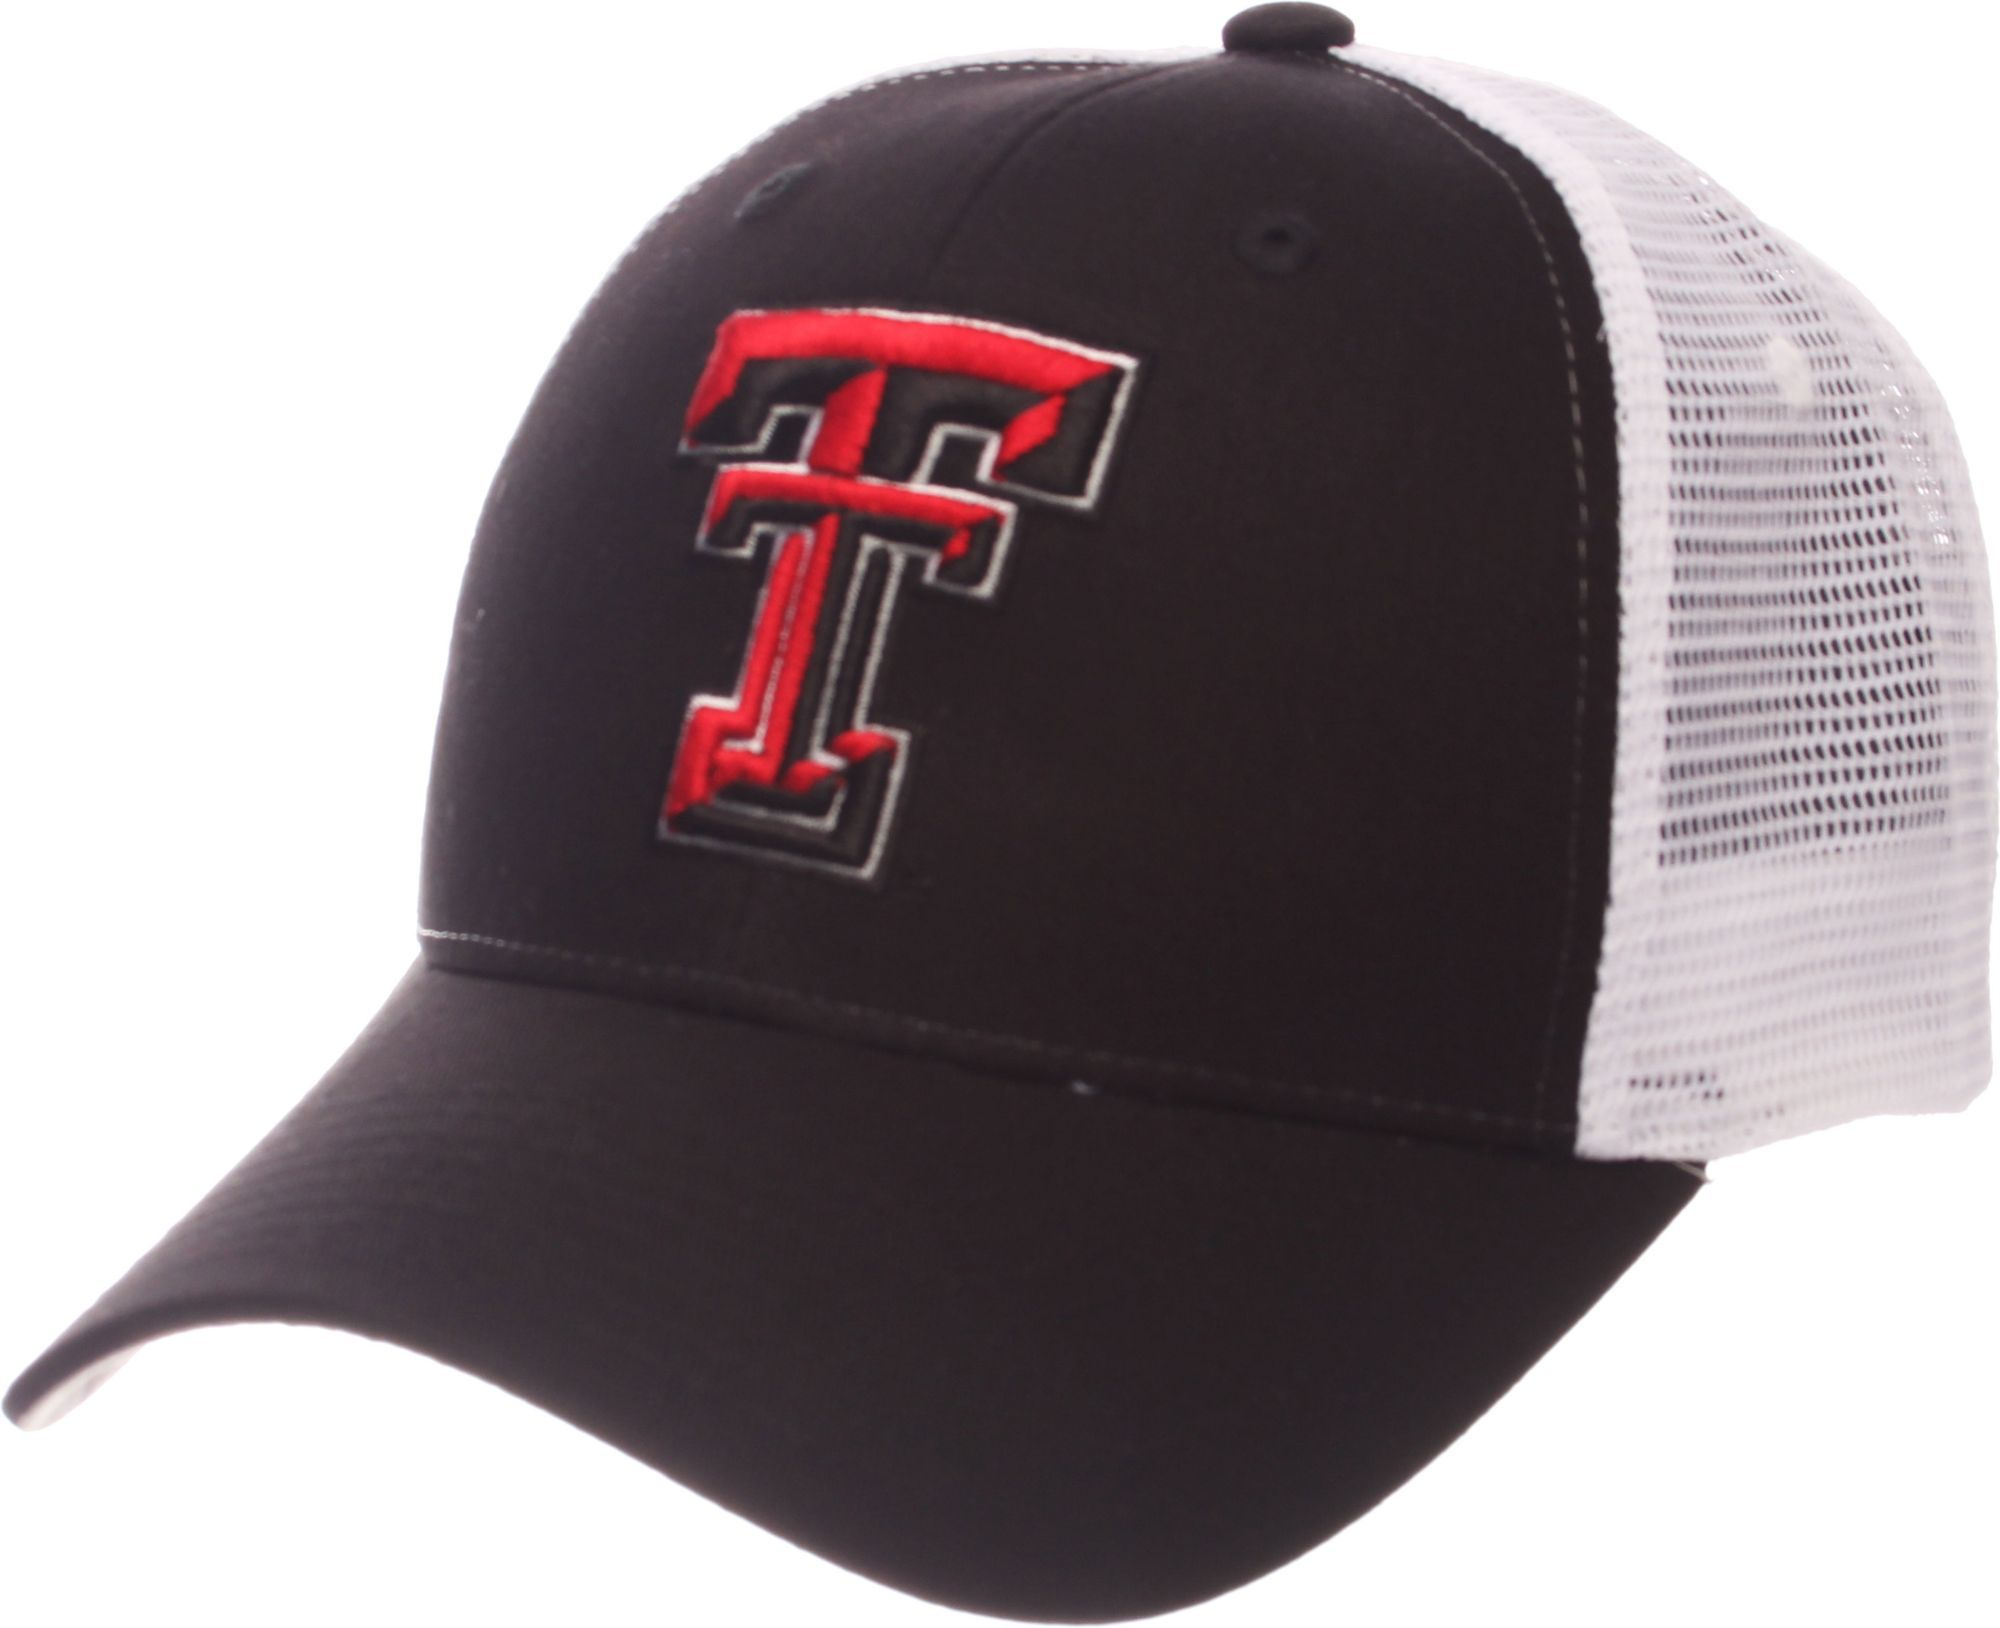 quality design 16004 2716d Zephyr Men s Texas Tech Red Red White Big Rig Adjustable Hat, Black